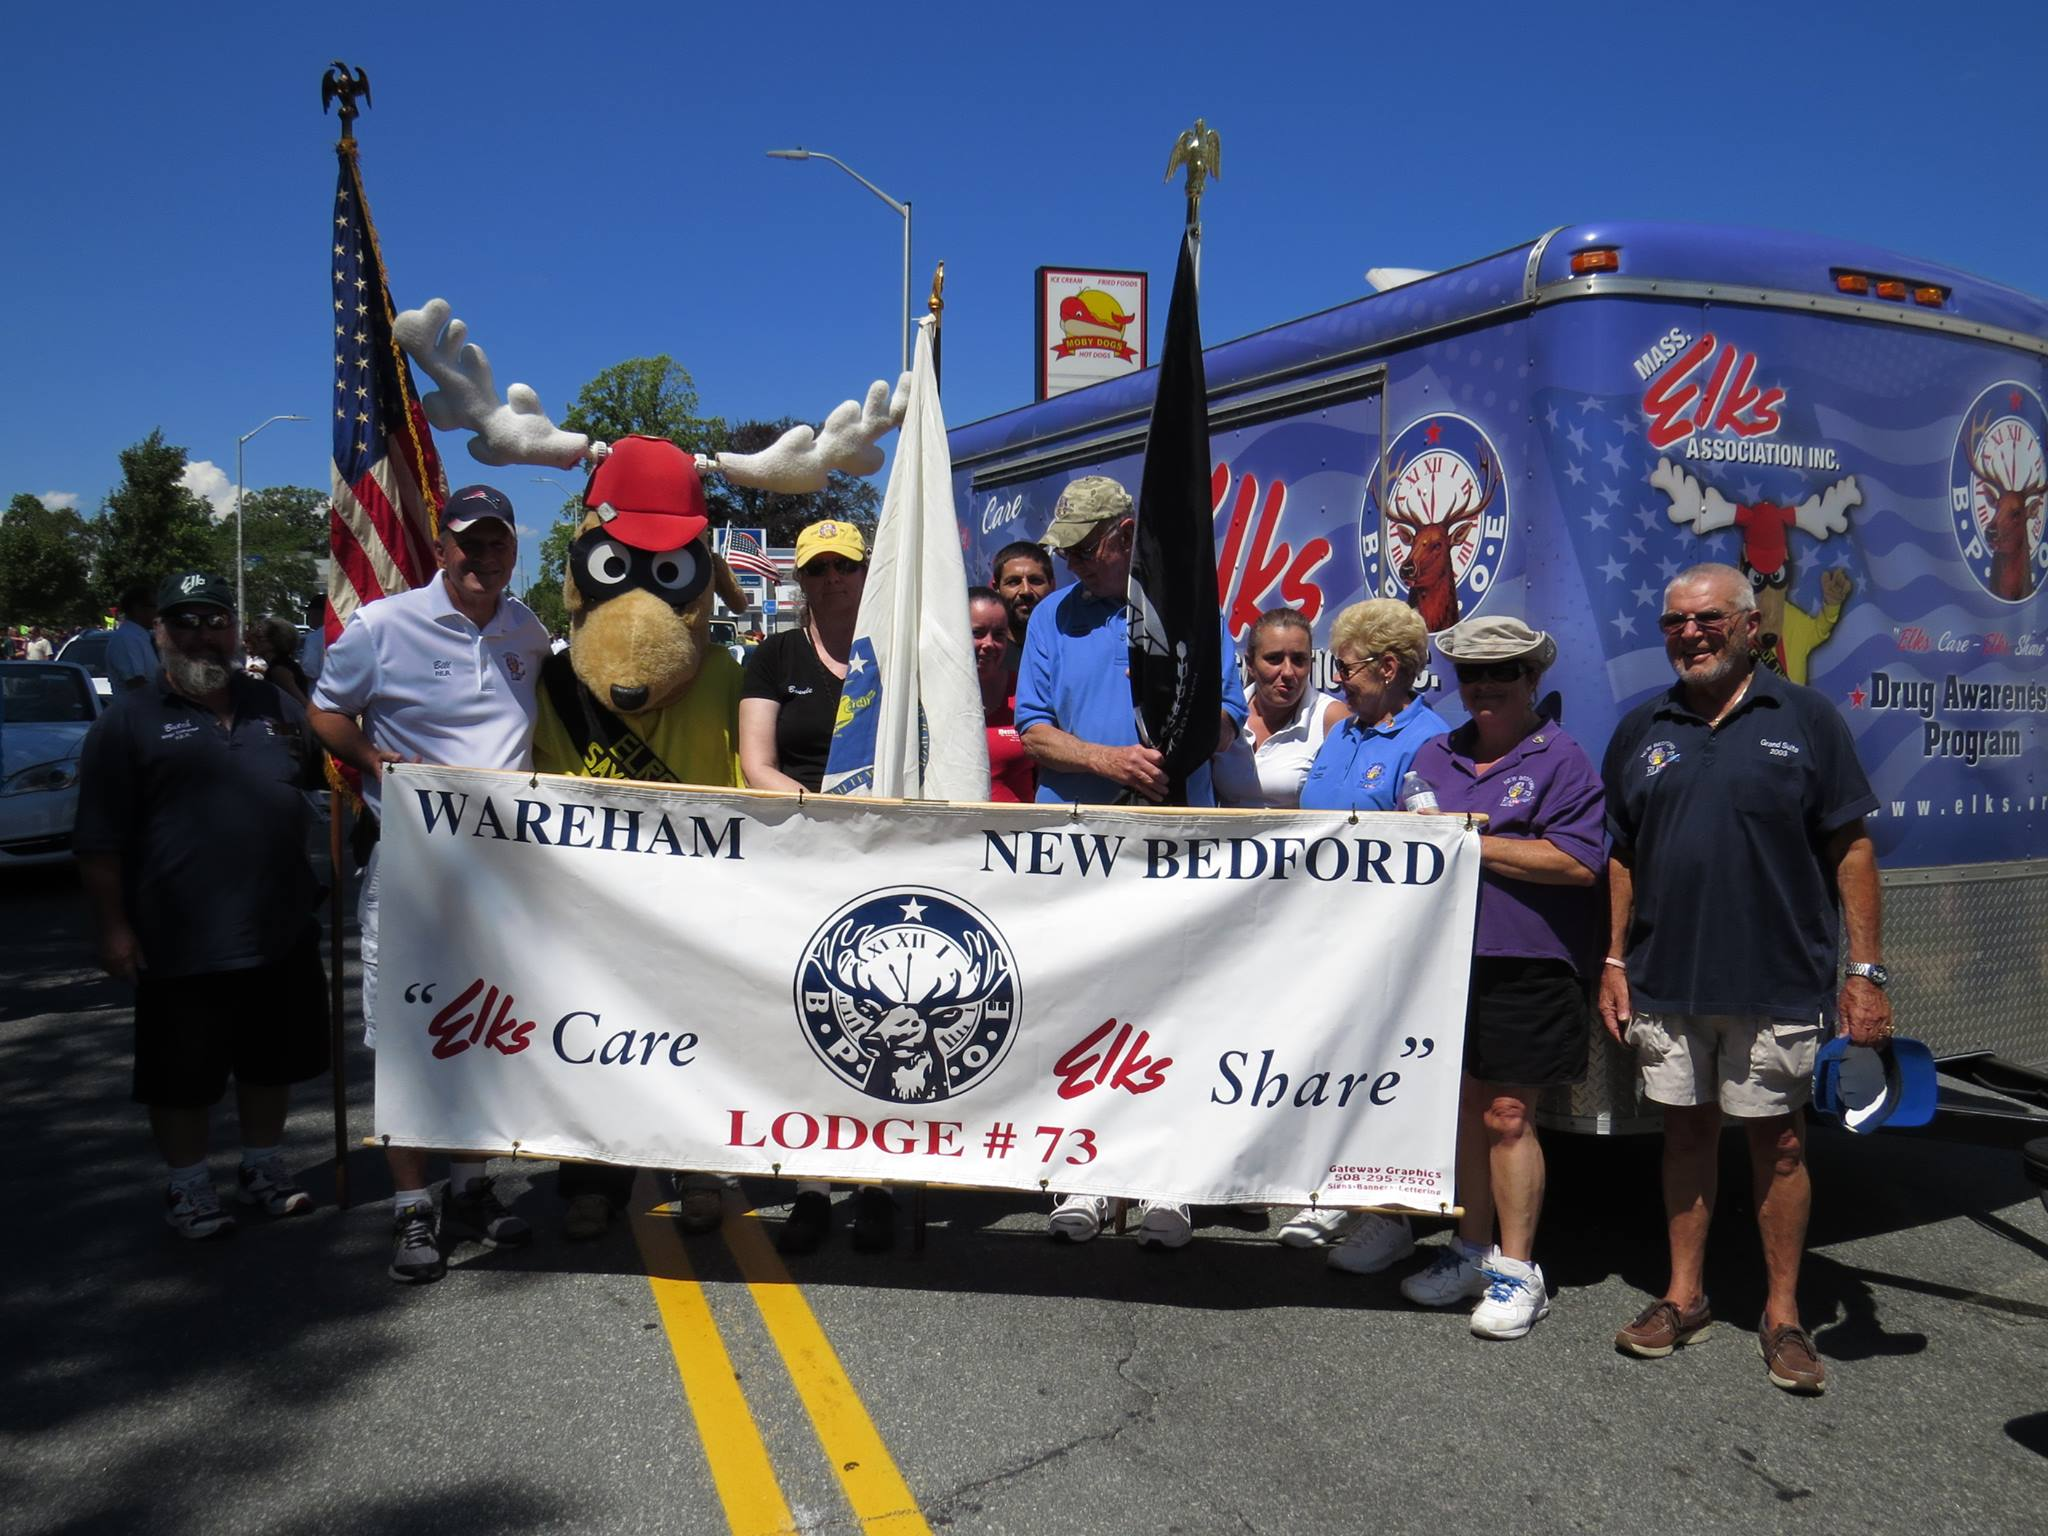 5 New Bedford Parade 2015